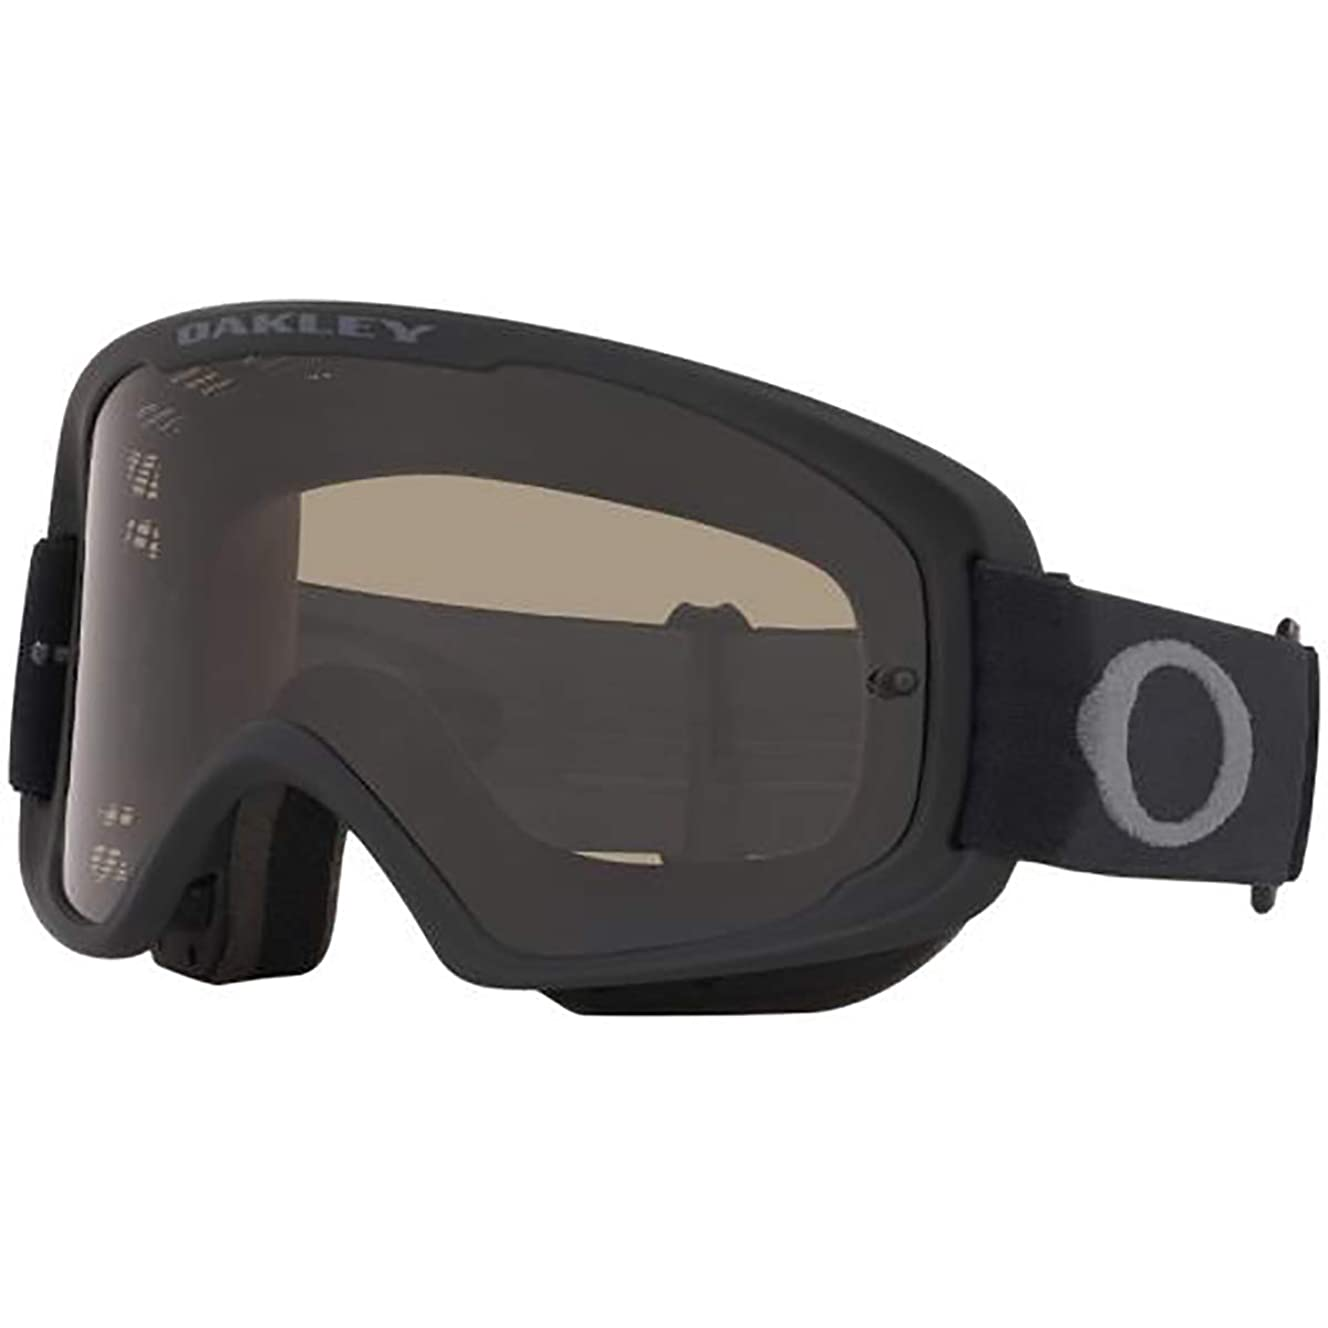 Oakley O-Frame 2.0 Men's MTB Off-Road Cycling Goggles - Matte Black/Dark Grey & Clear/One Size